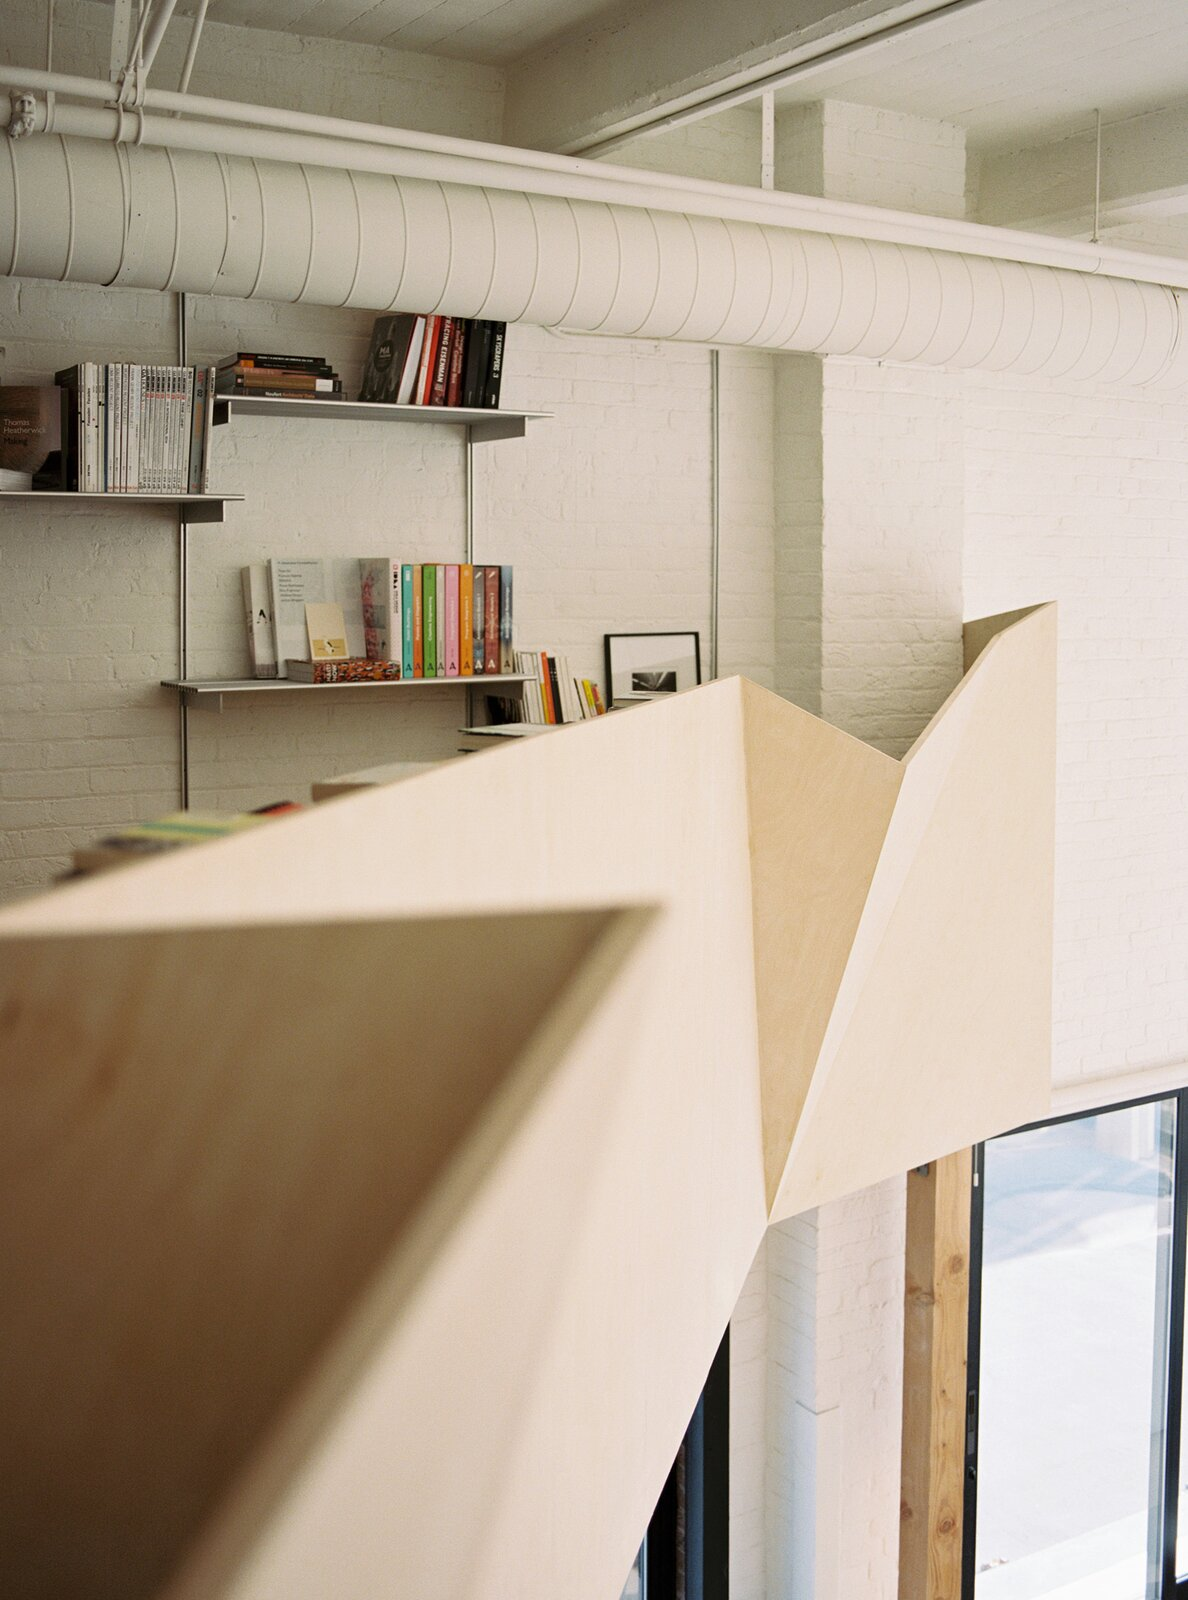 Biscuit Loft by OWIU Studio, before and after